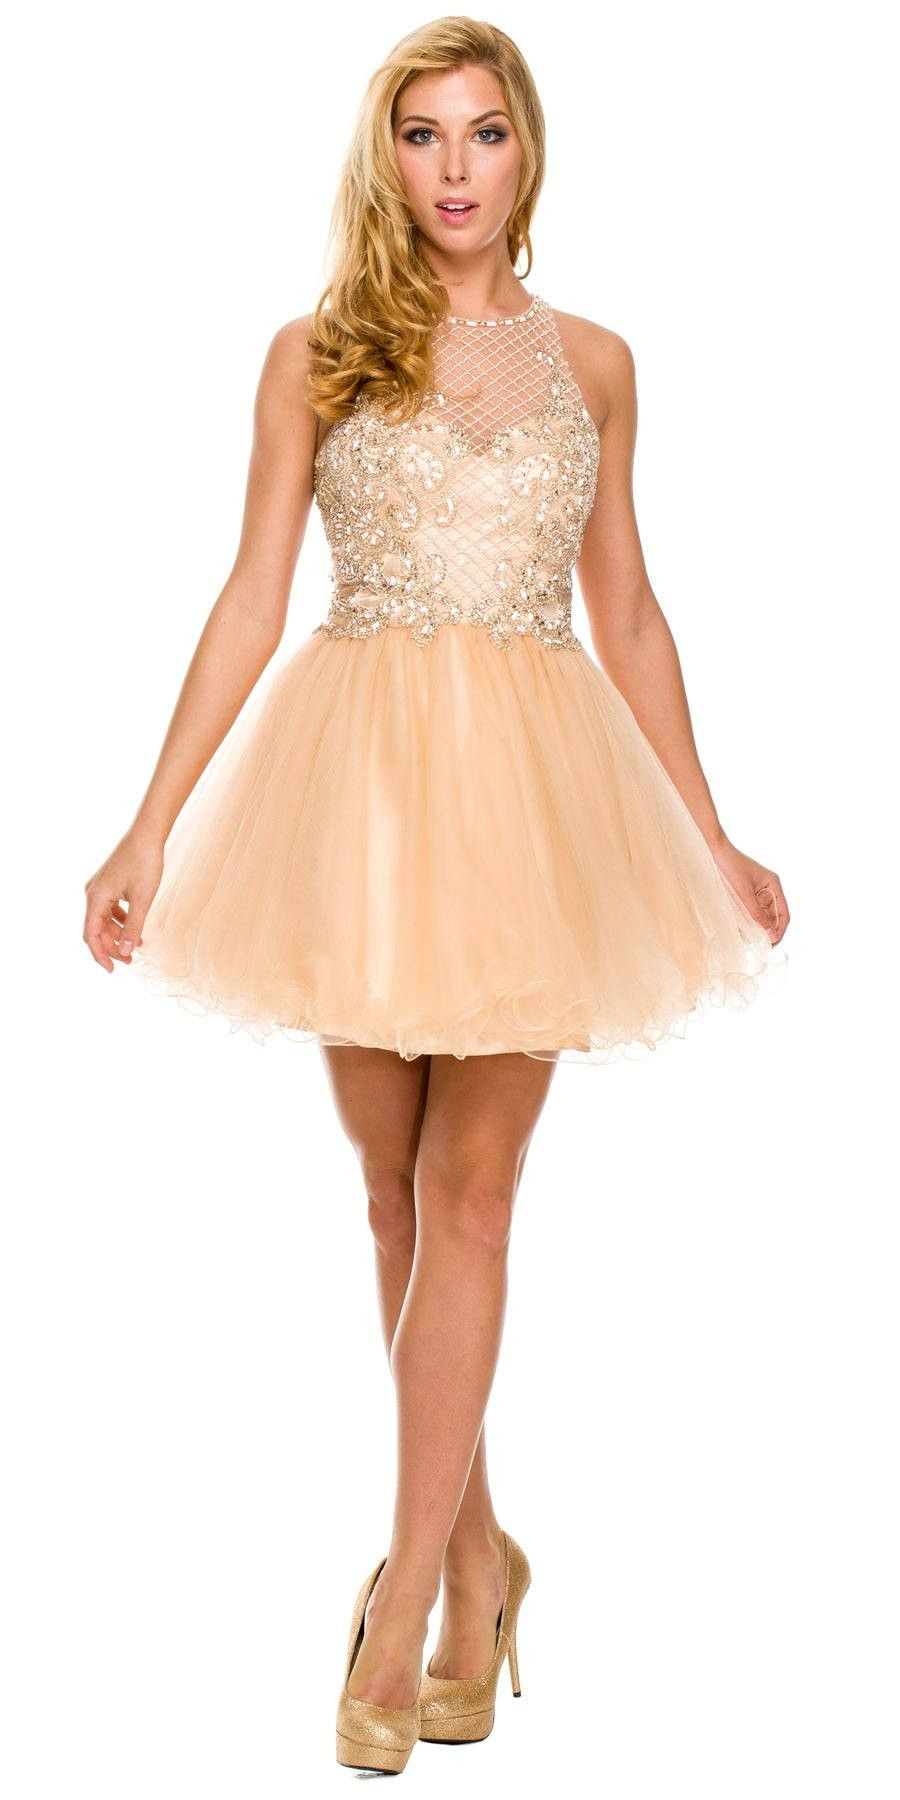 Short poofy formal gown silver tulle skirt a line high neck formal